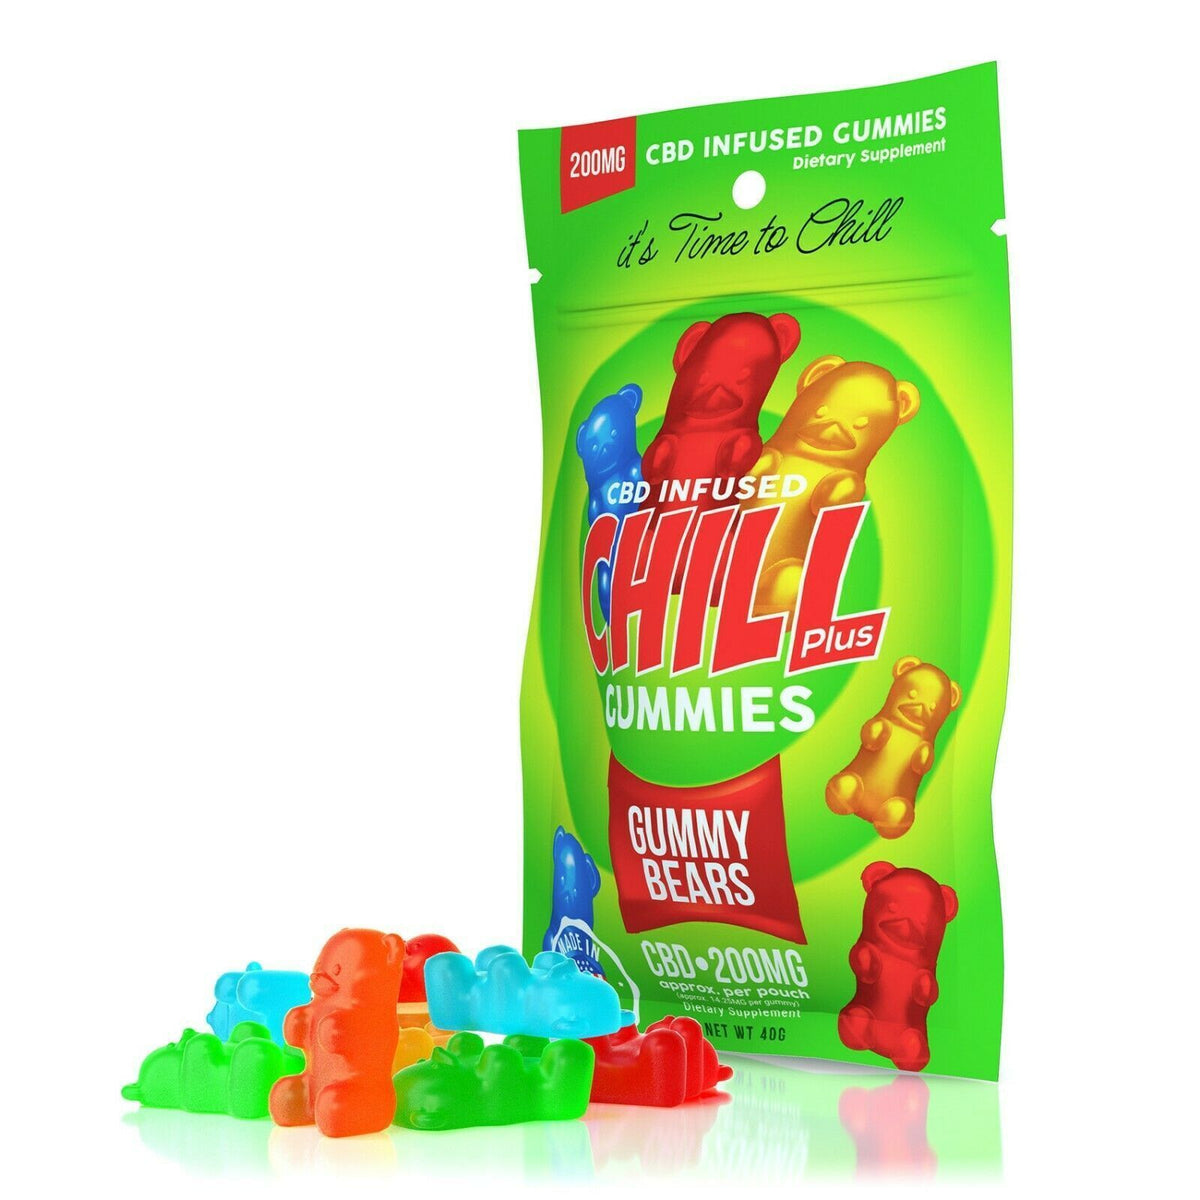 Chill Plus Gummies - CBD/Hemp Infused Gummy Bears - 200mg